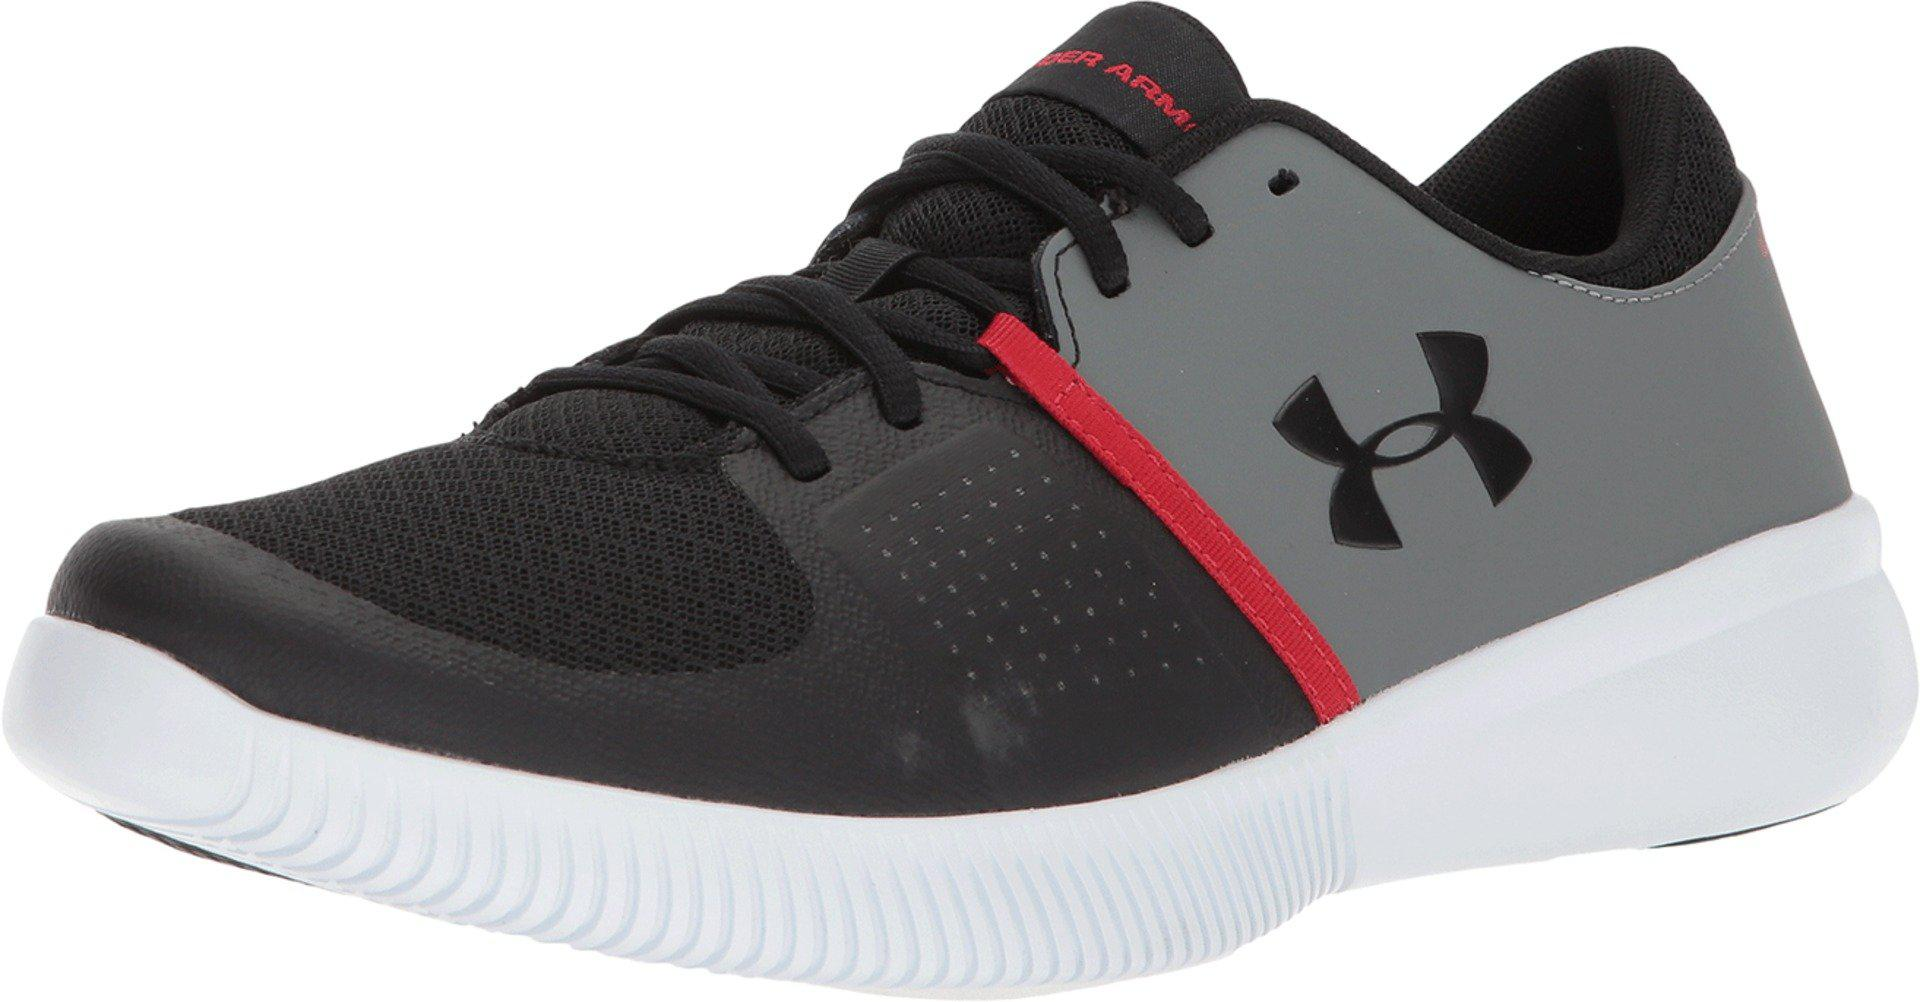 Under Armour Synthetic Ua Zone 3 in